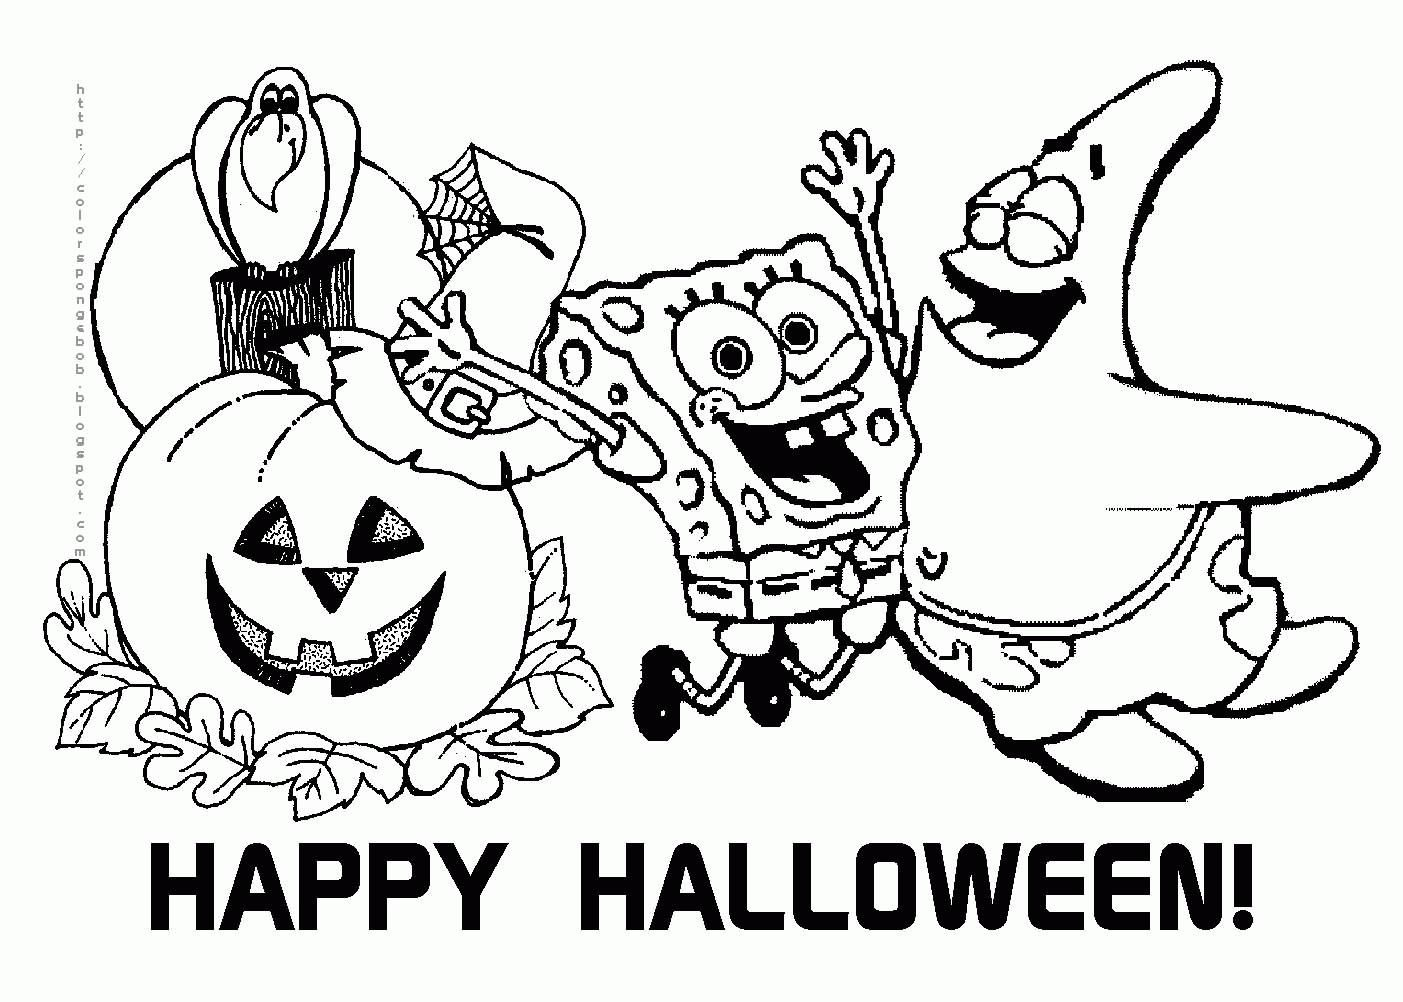 Free Printable Coloring Halloween Cards Halloween Coloring Pages Halloween Coloring Pages Printable Free Halloween Coloring Pages